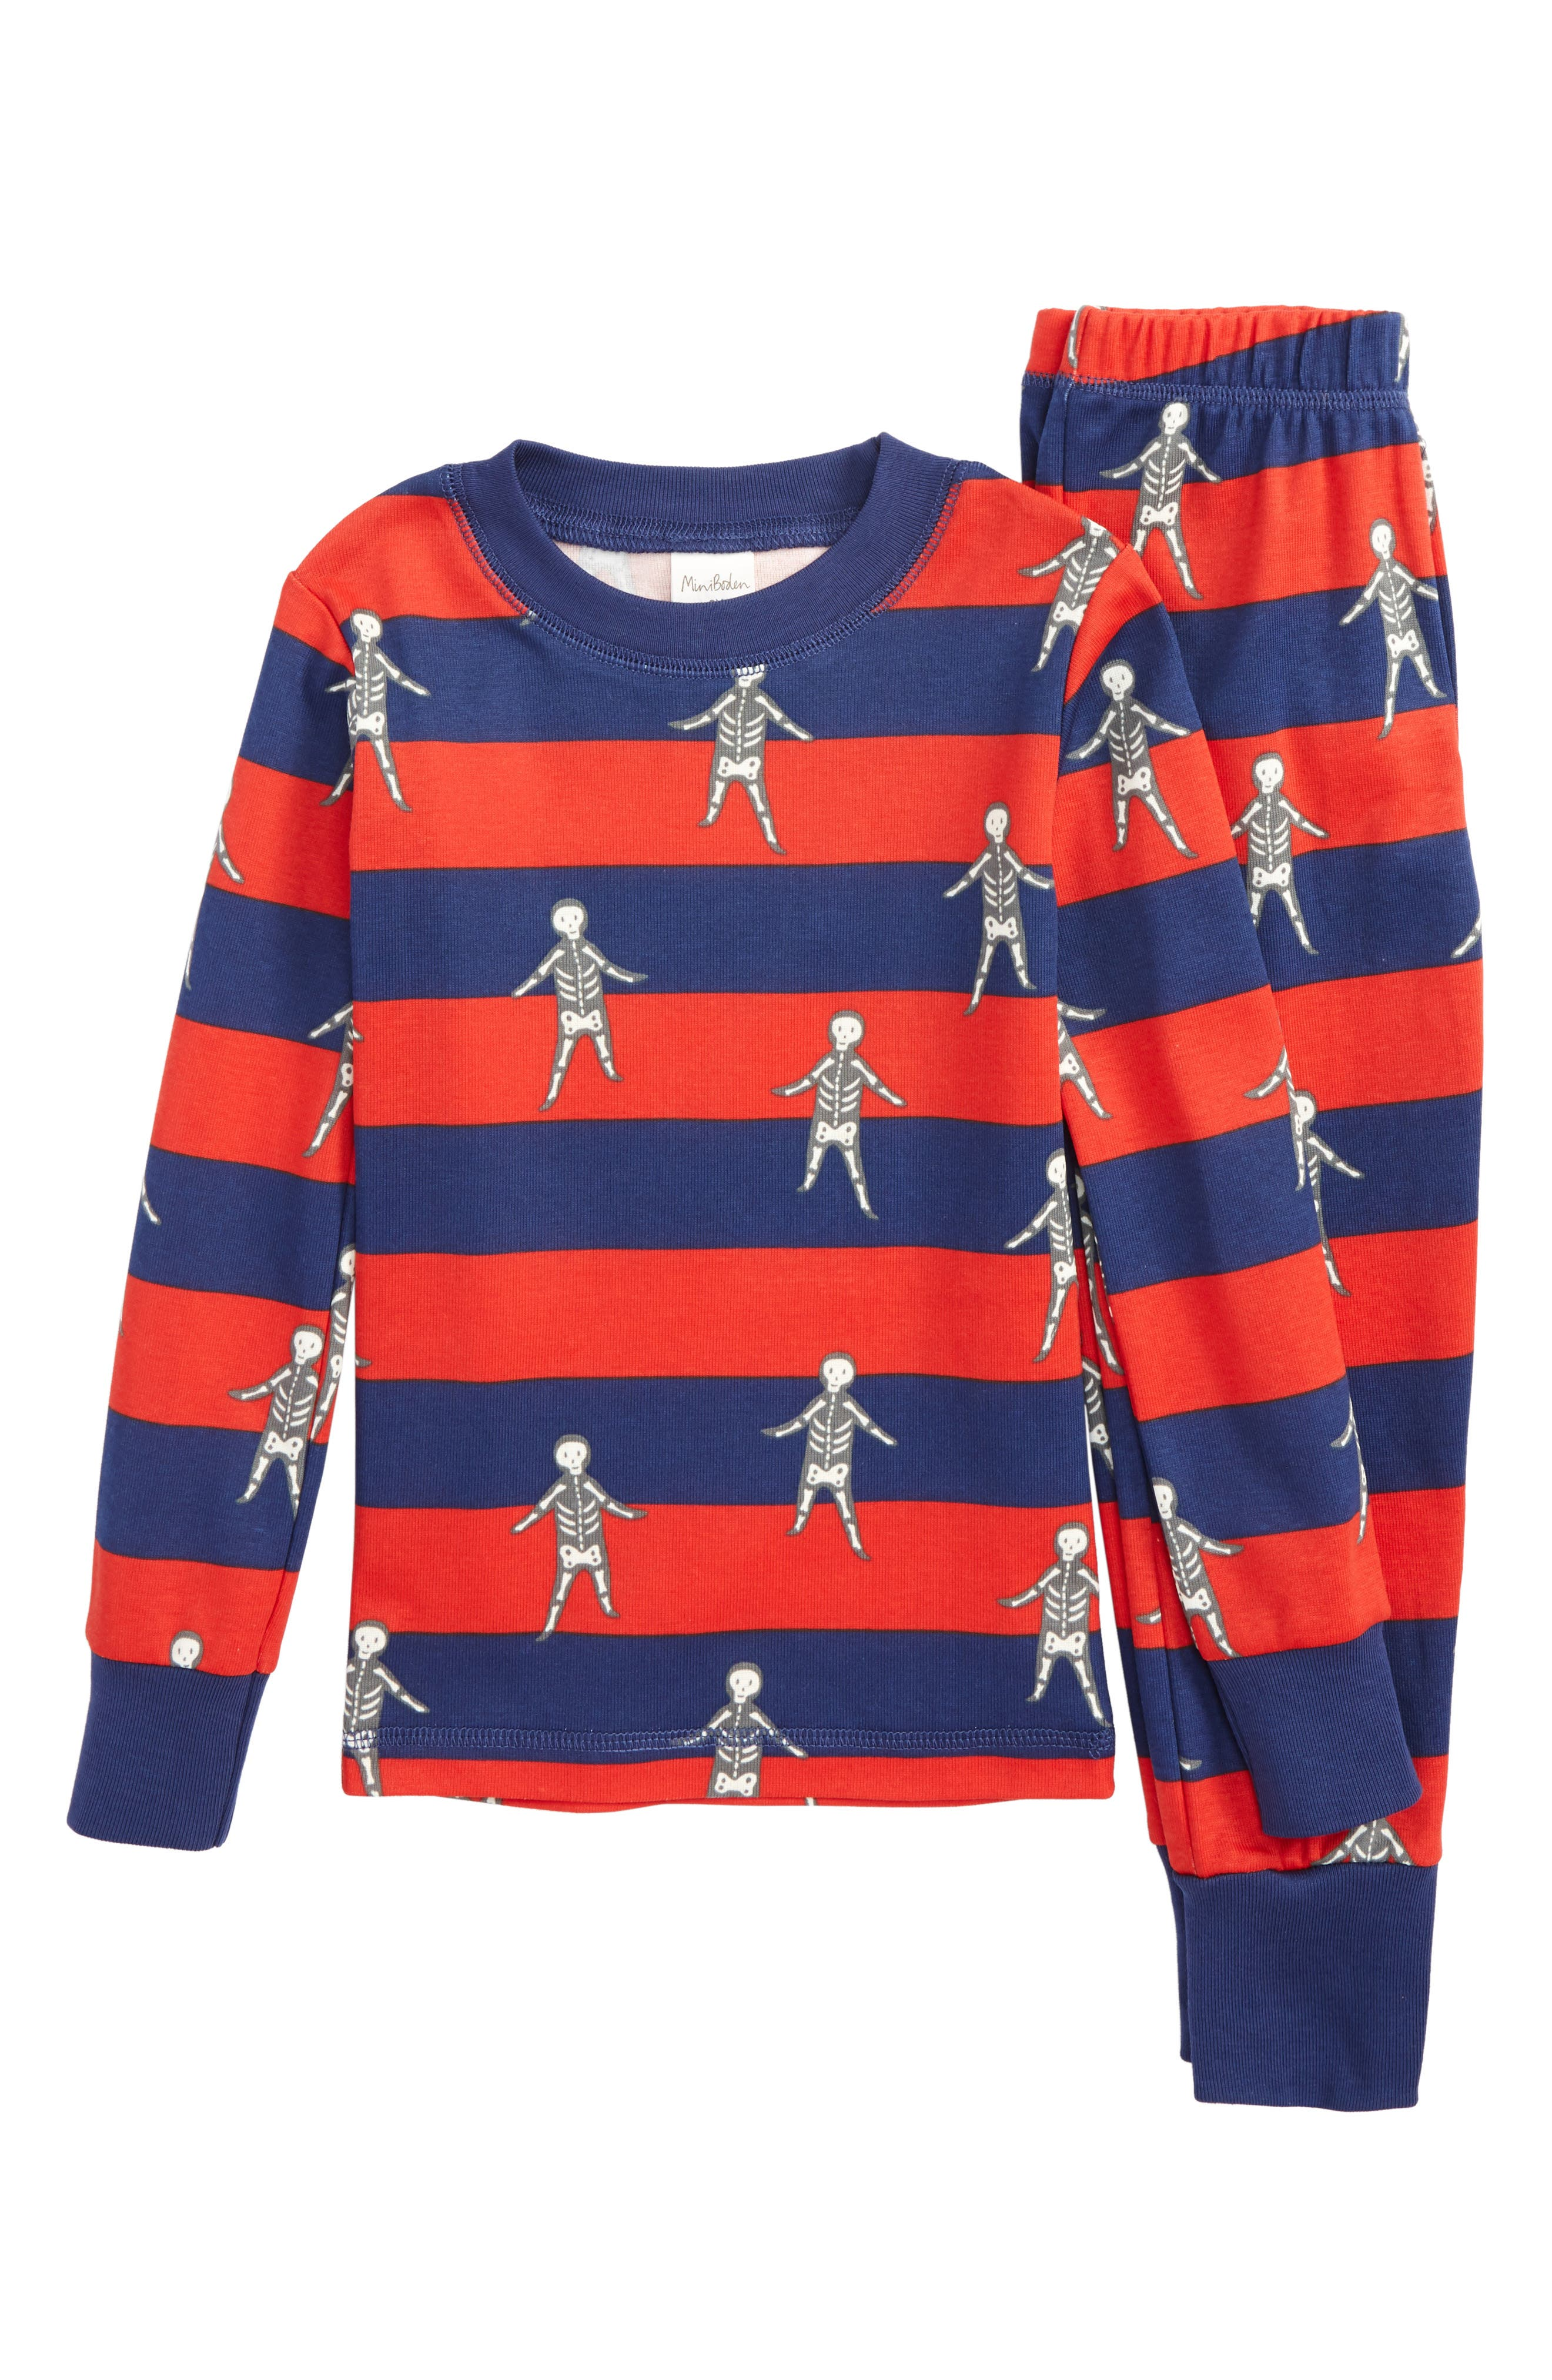 Glow in the Dark Fitted Two-Piece Pajamas,                             Main thumbnail 1, color,                             Blue Beacon/ Ziggy Red